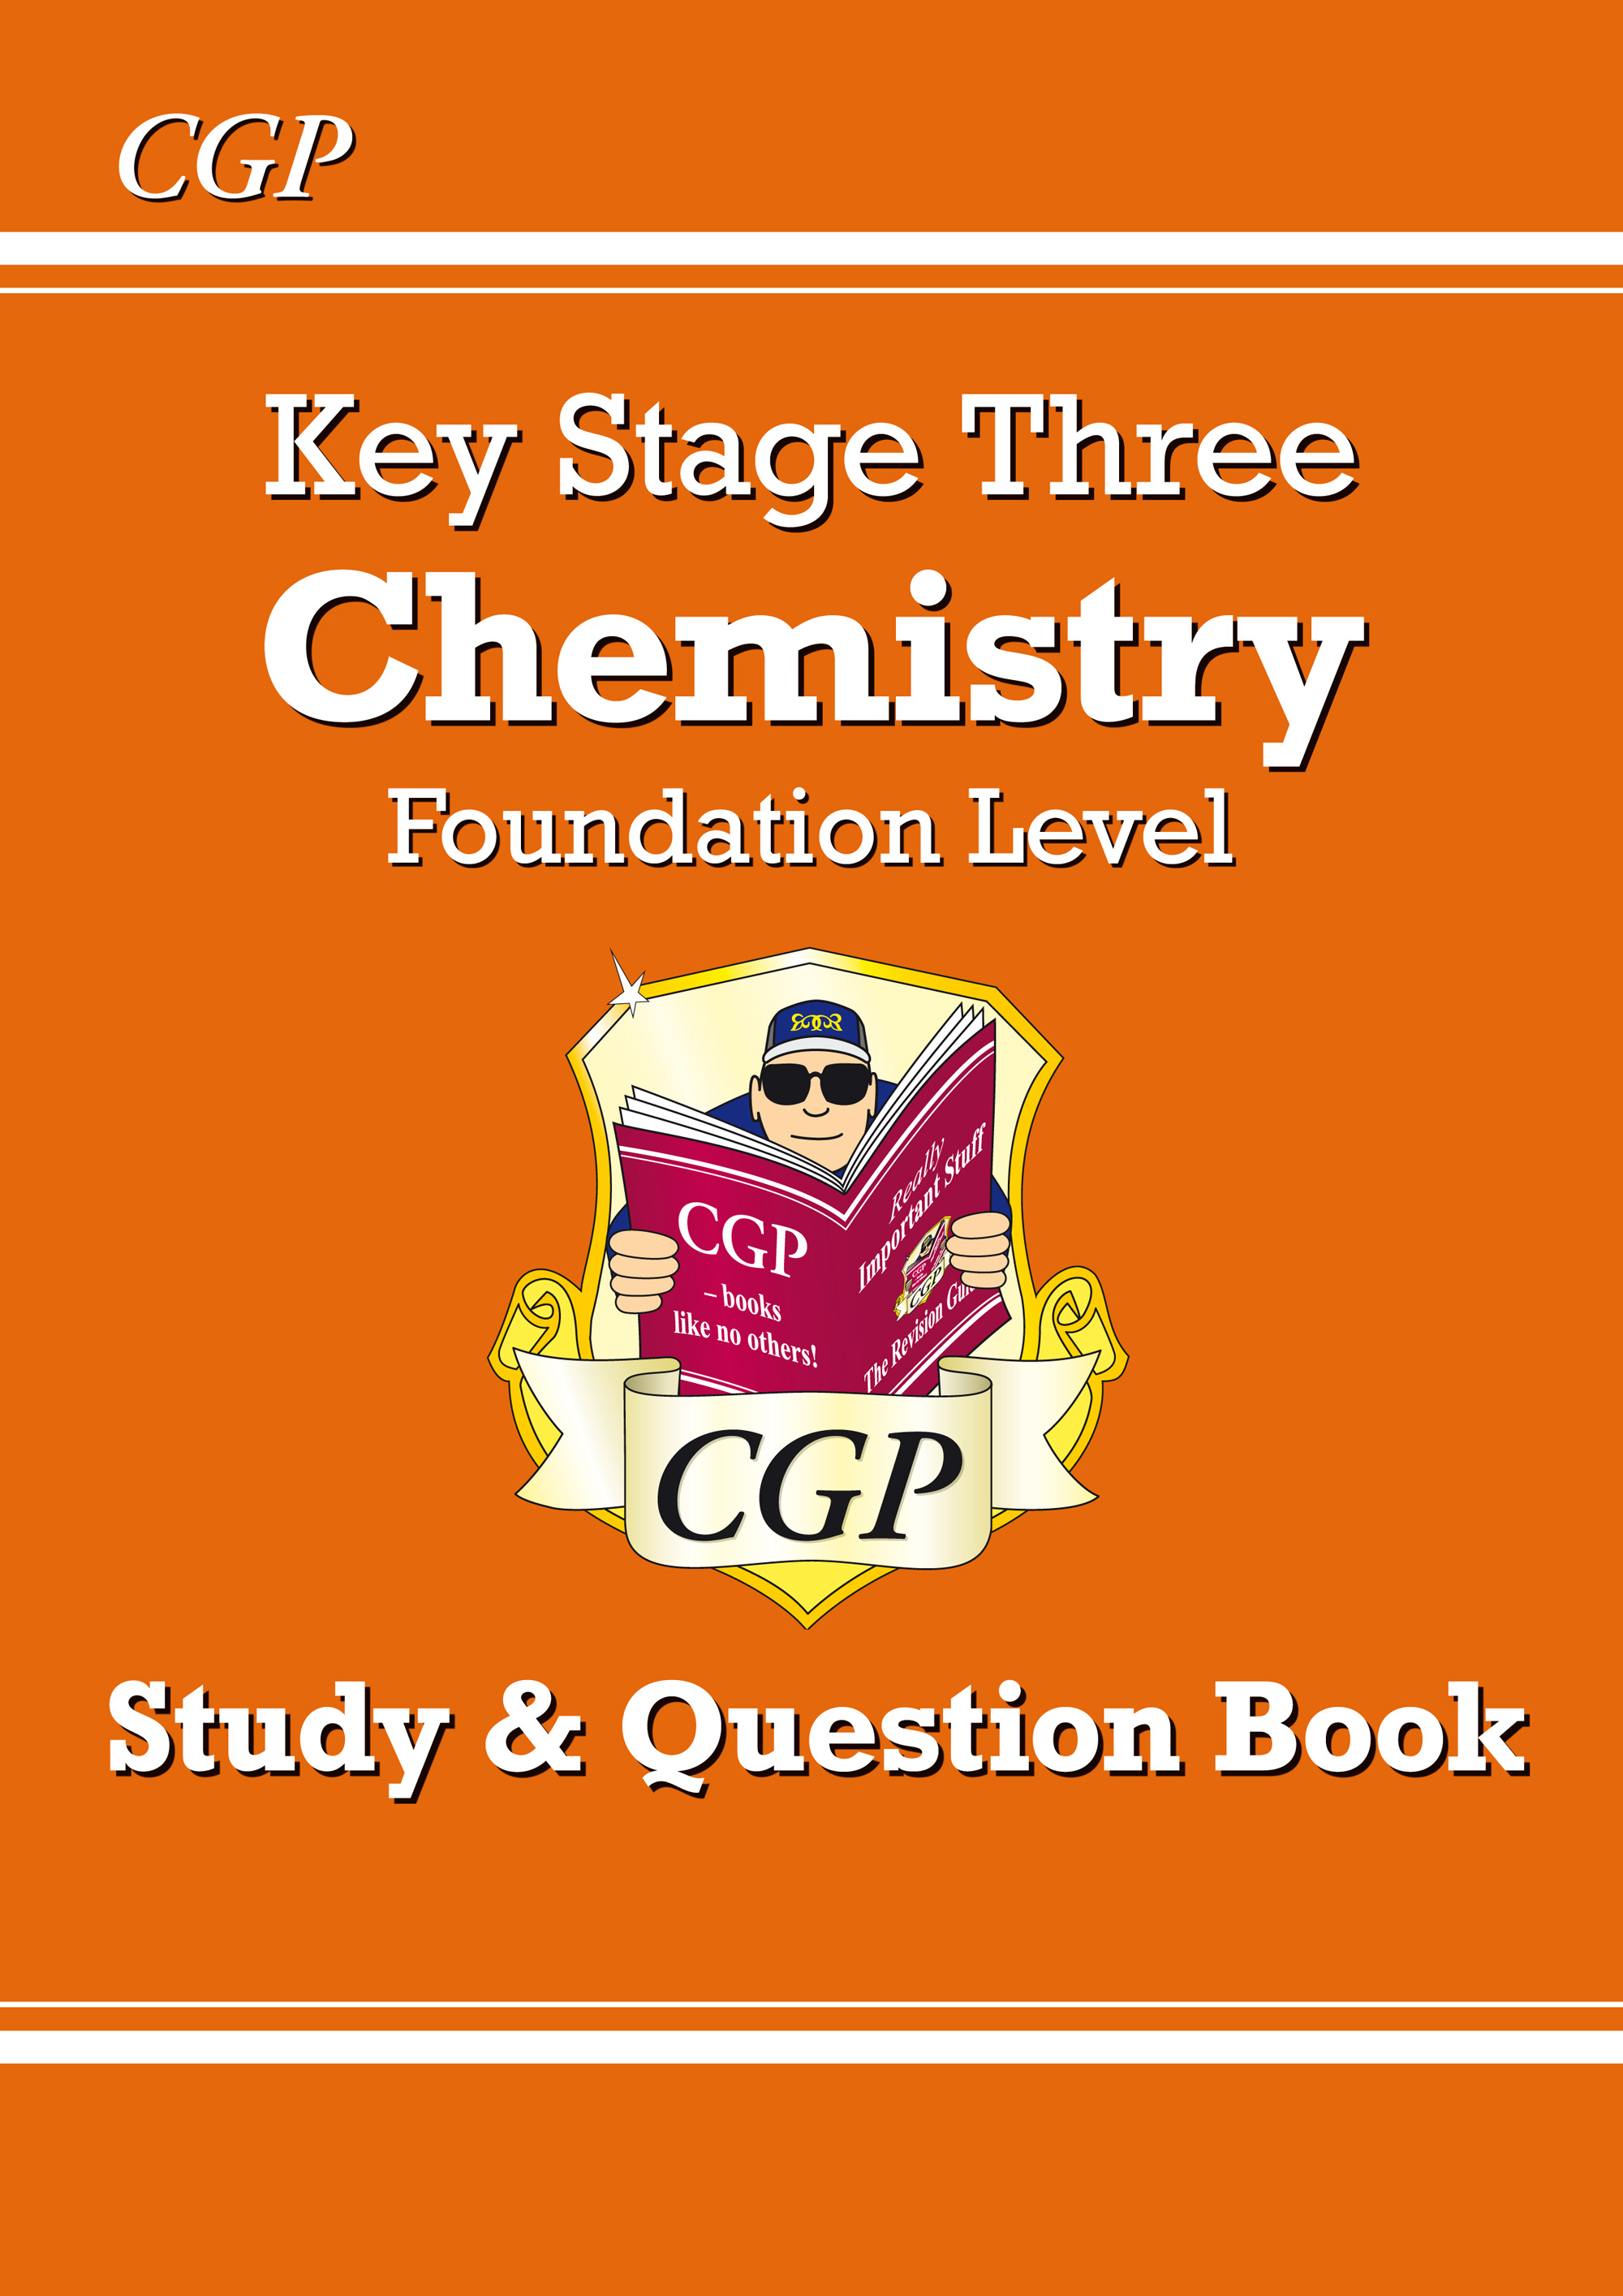 CFQ32 - KS3 Chemistry Study & Question Book - Foundation